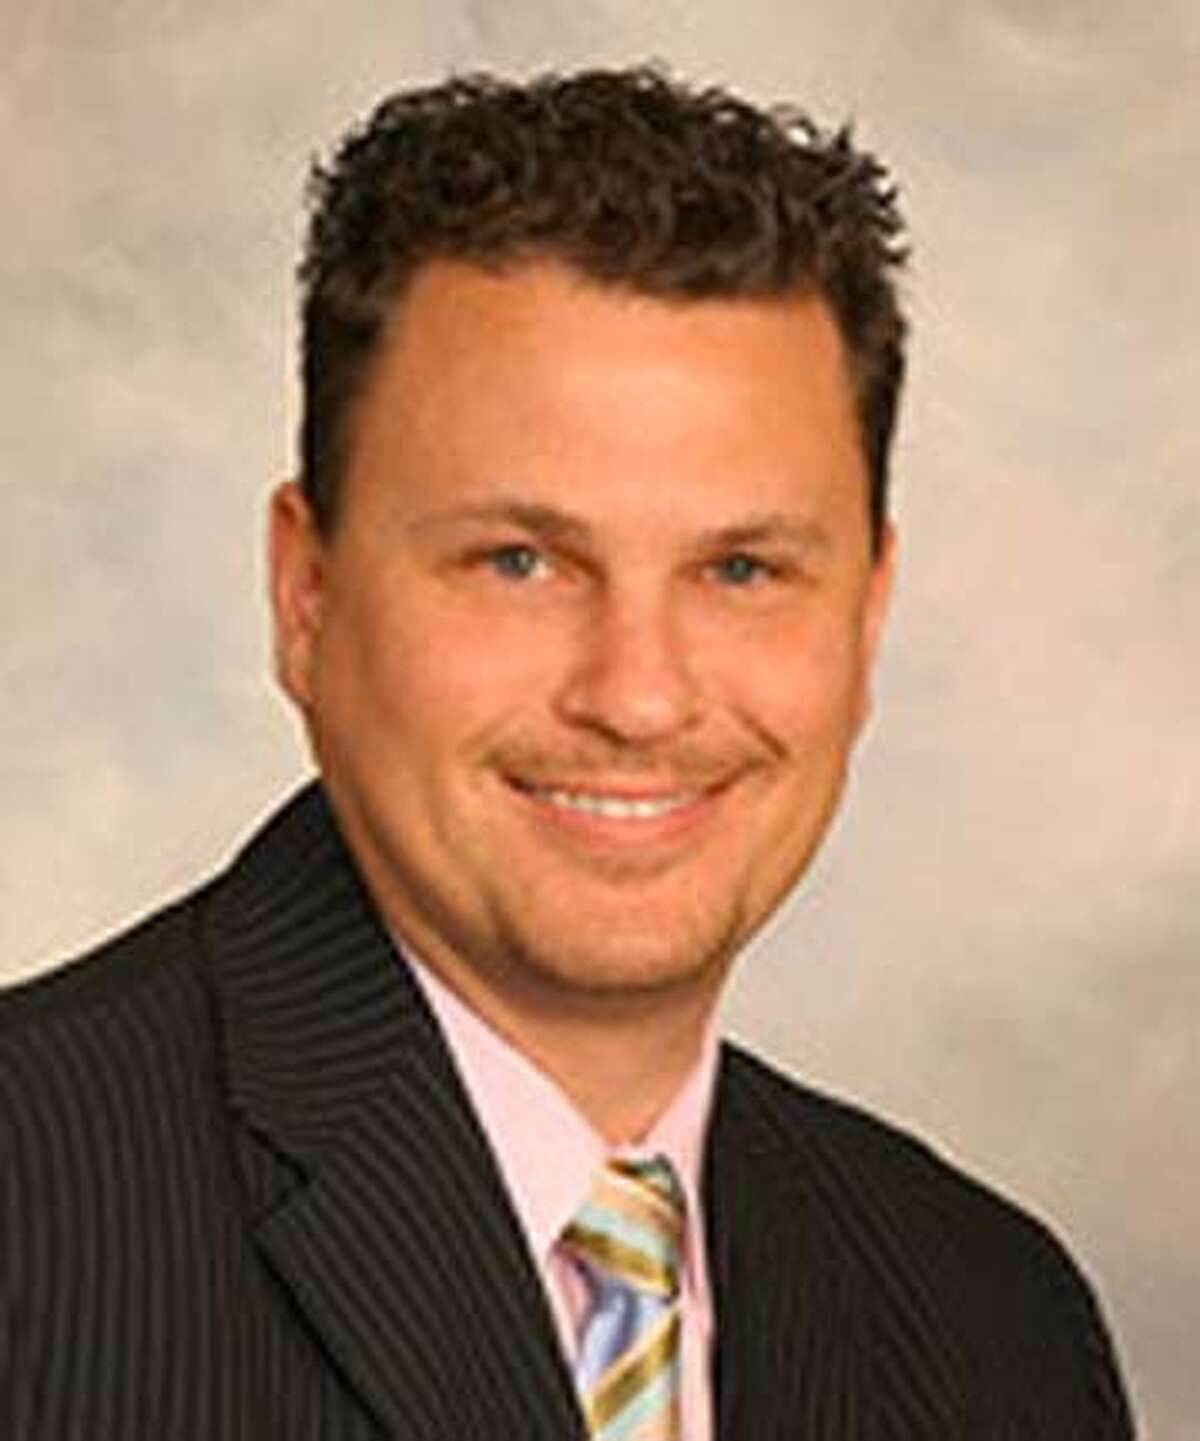 Pinole Councilman David Cole, in the the soup over an upscale cafe, says he's enlisting at age 38.